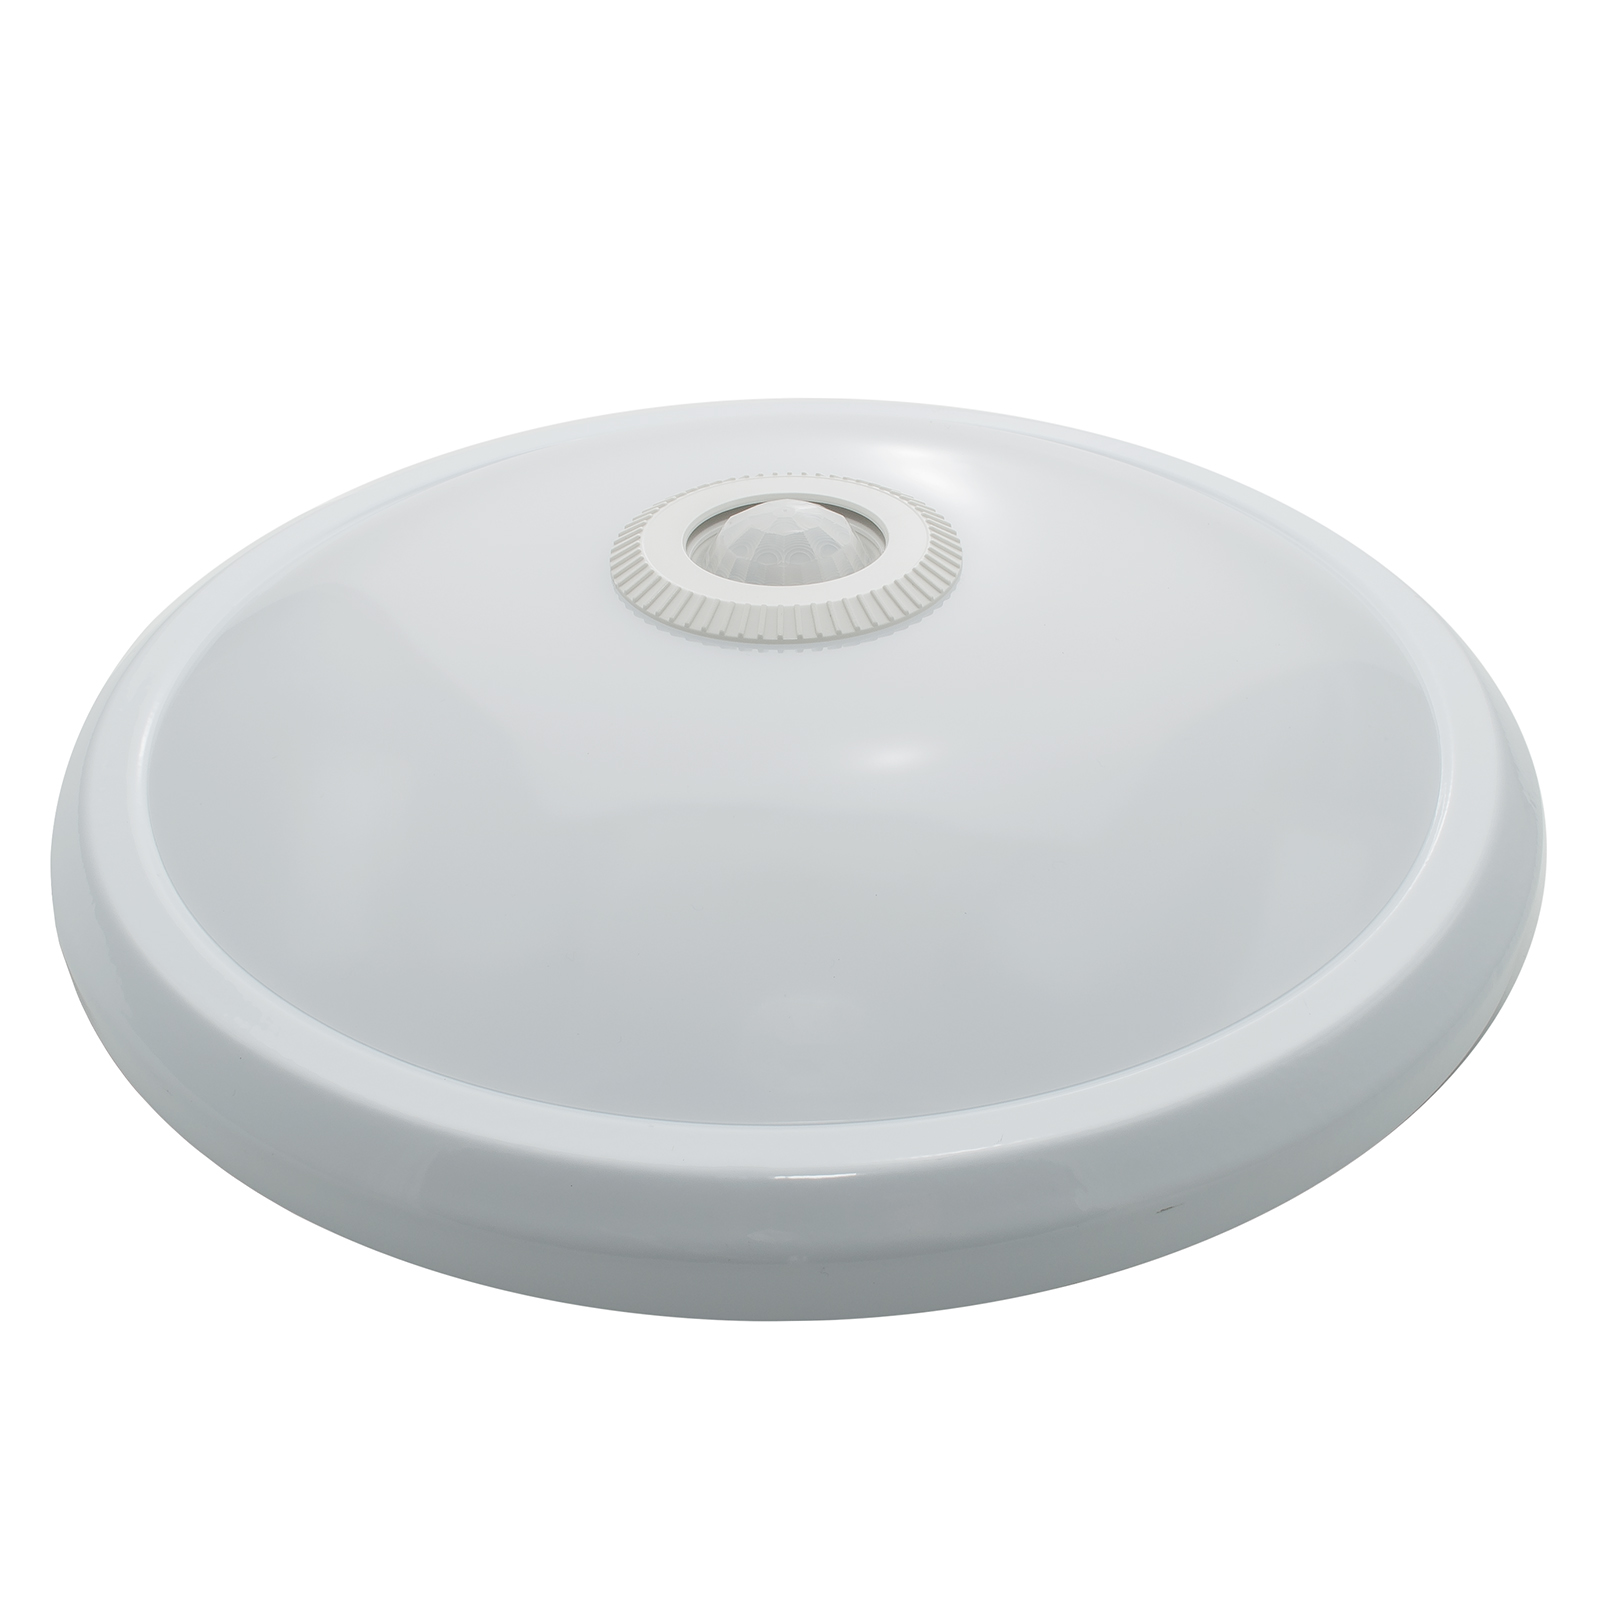 Plafoniera soffitto led integrati 12W luce regolabile 4000k sensore movimento